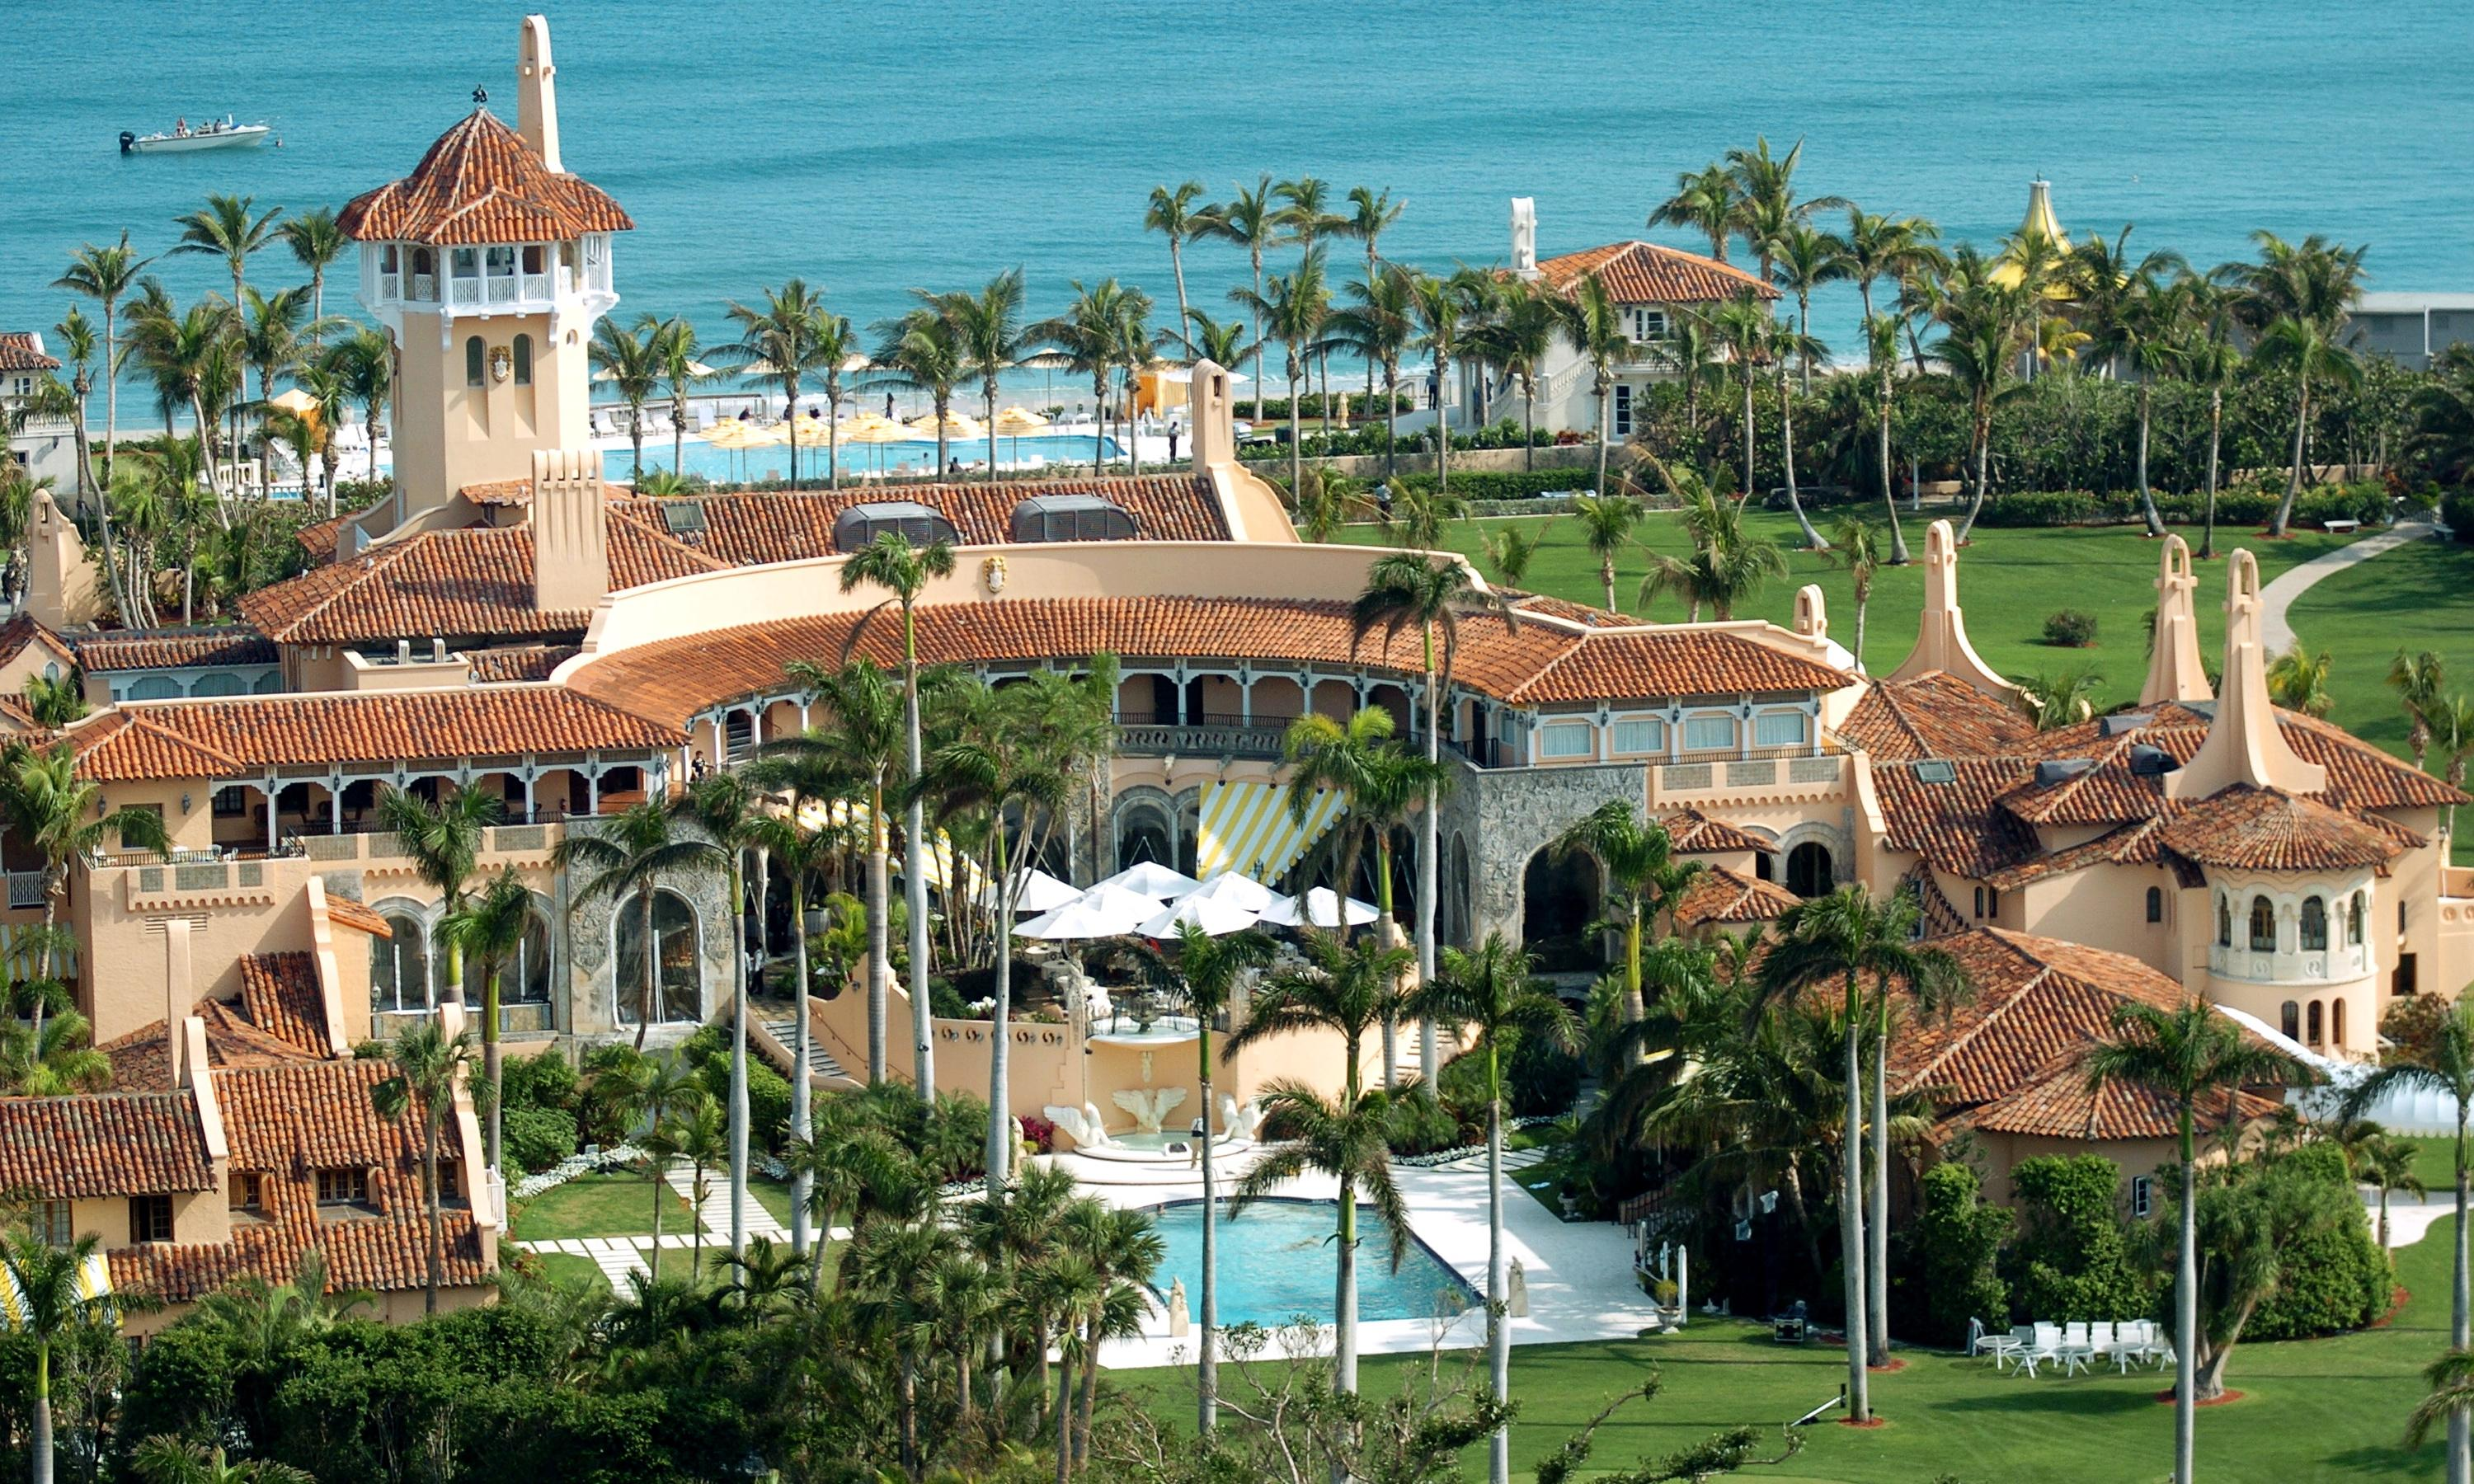 'Pay-for-access to Trump club': Mar-a-Lago faces renewed ethics concerns